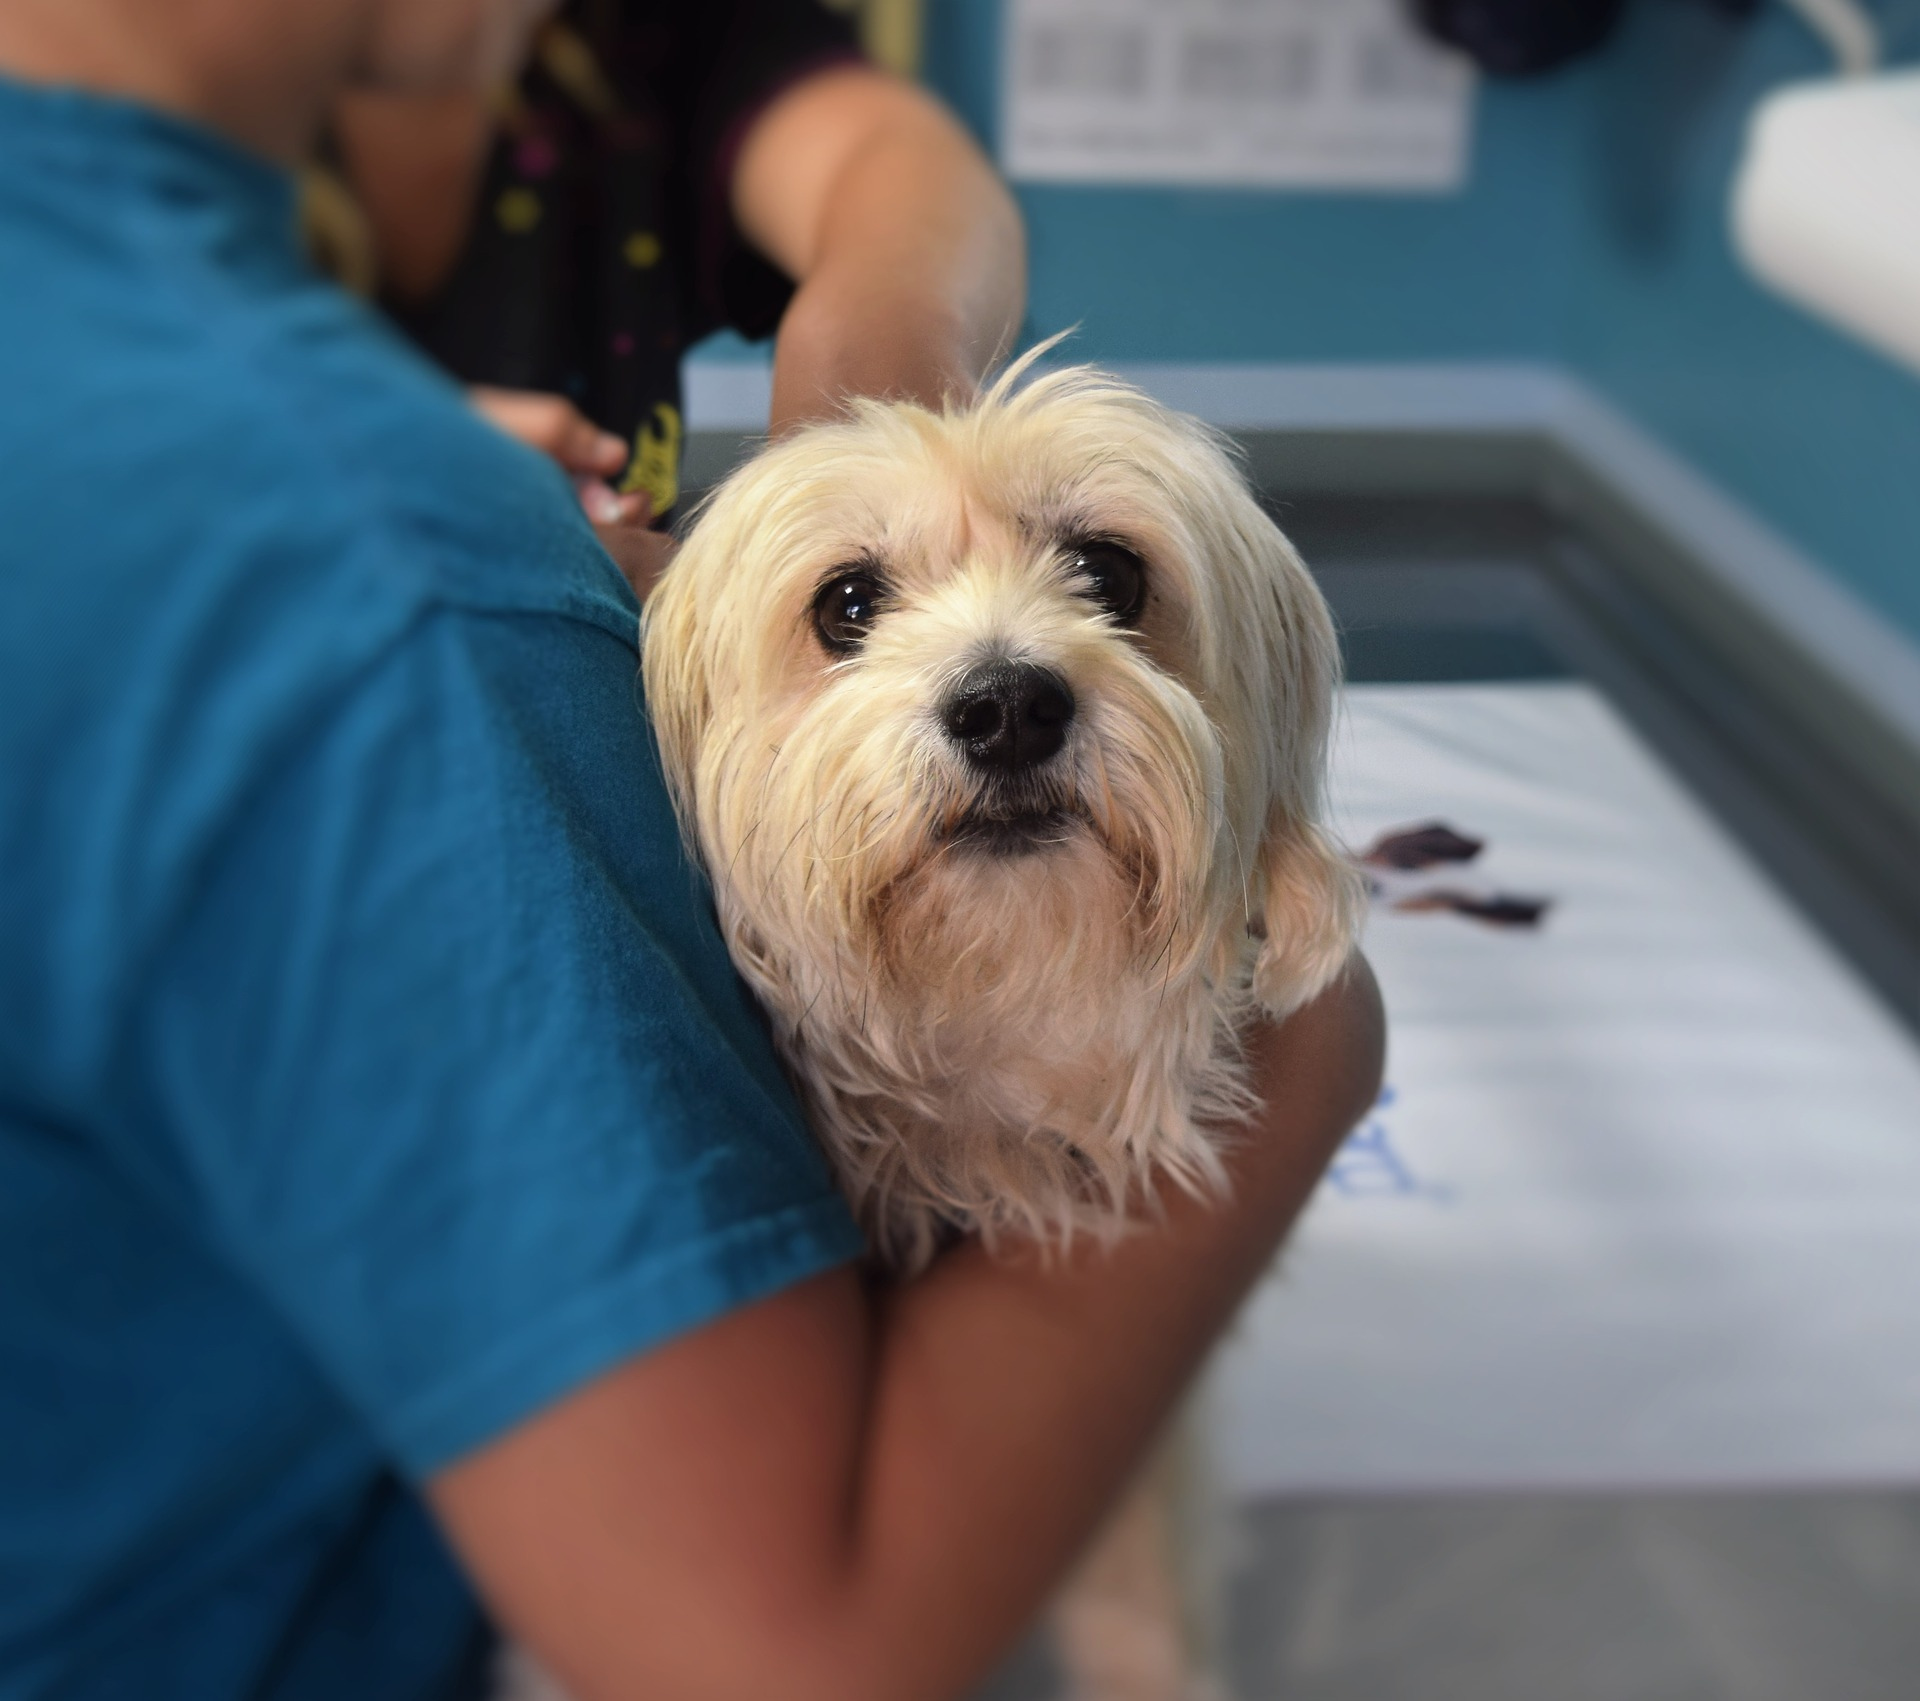 Bring your pets to our monthly low-cost vaccine clinics on the third Sunday of every month from 11am-3pm.